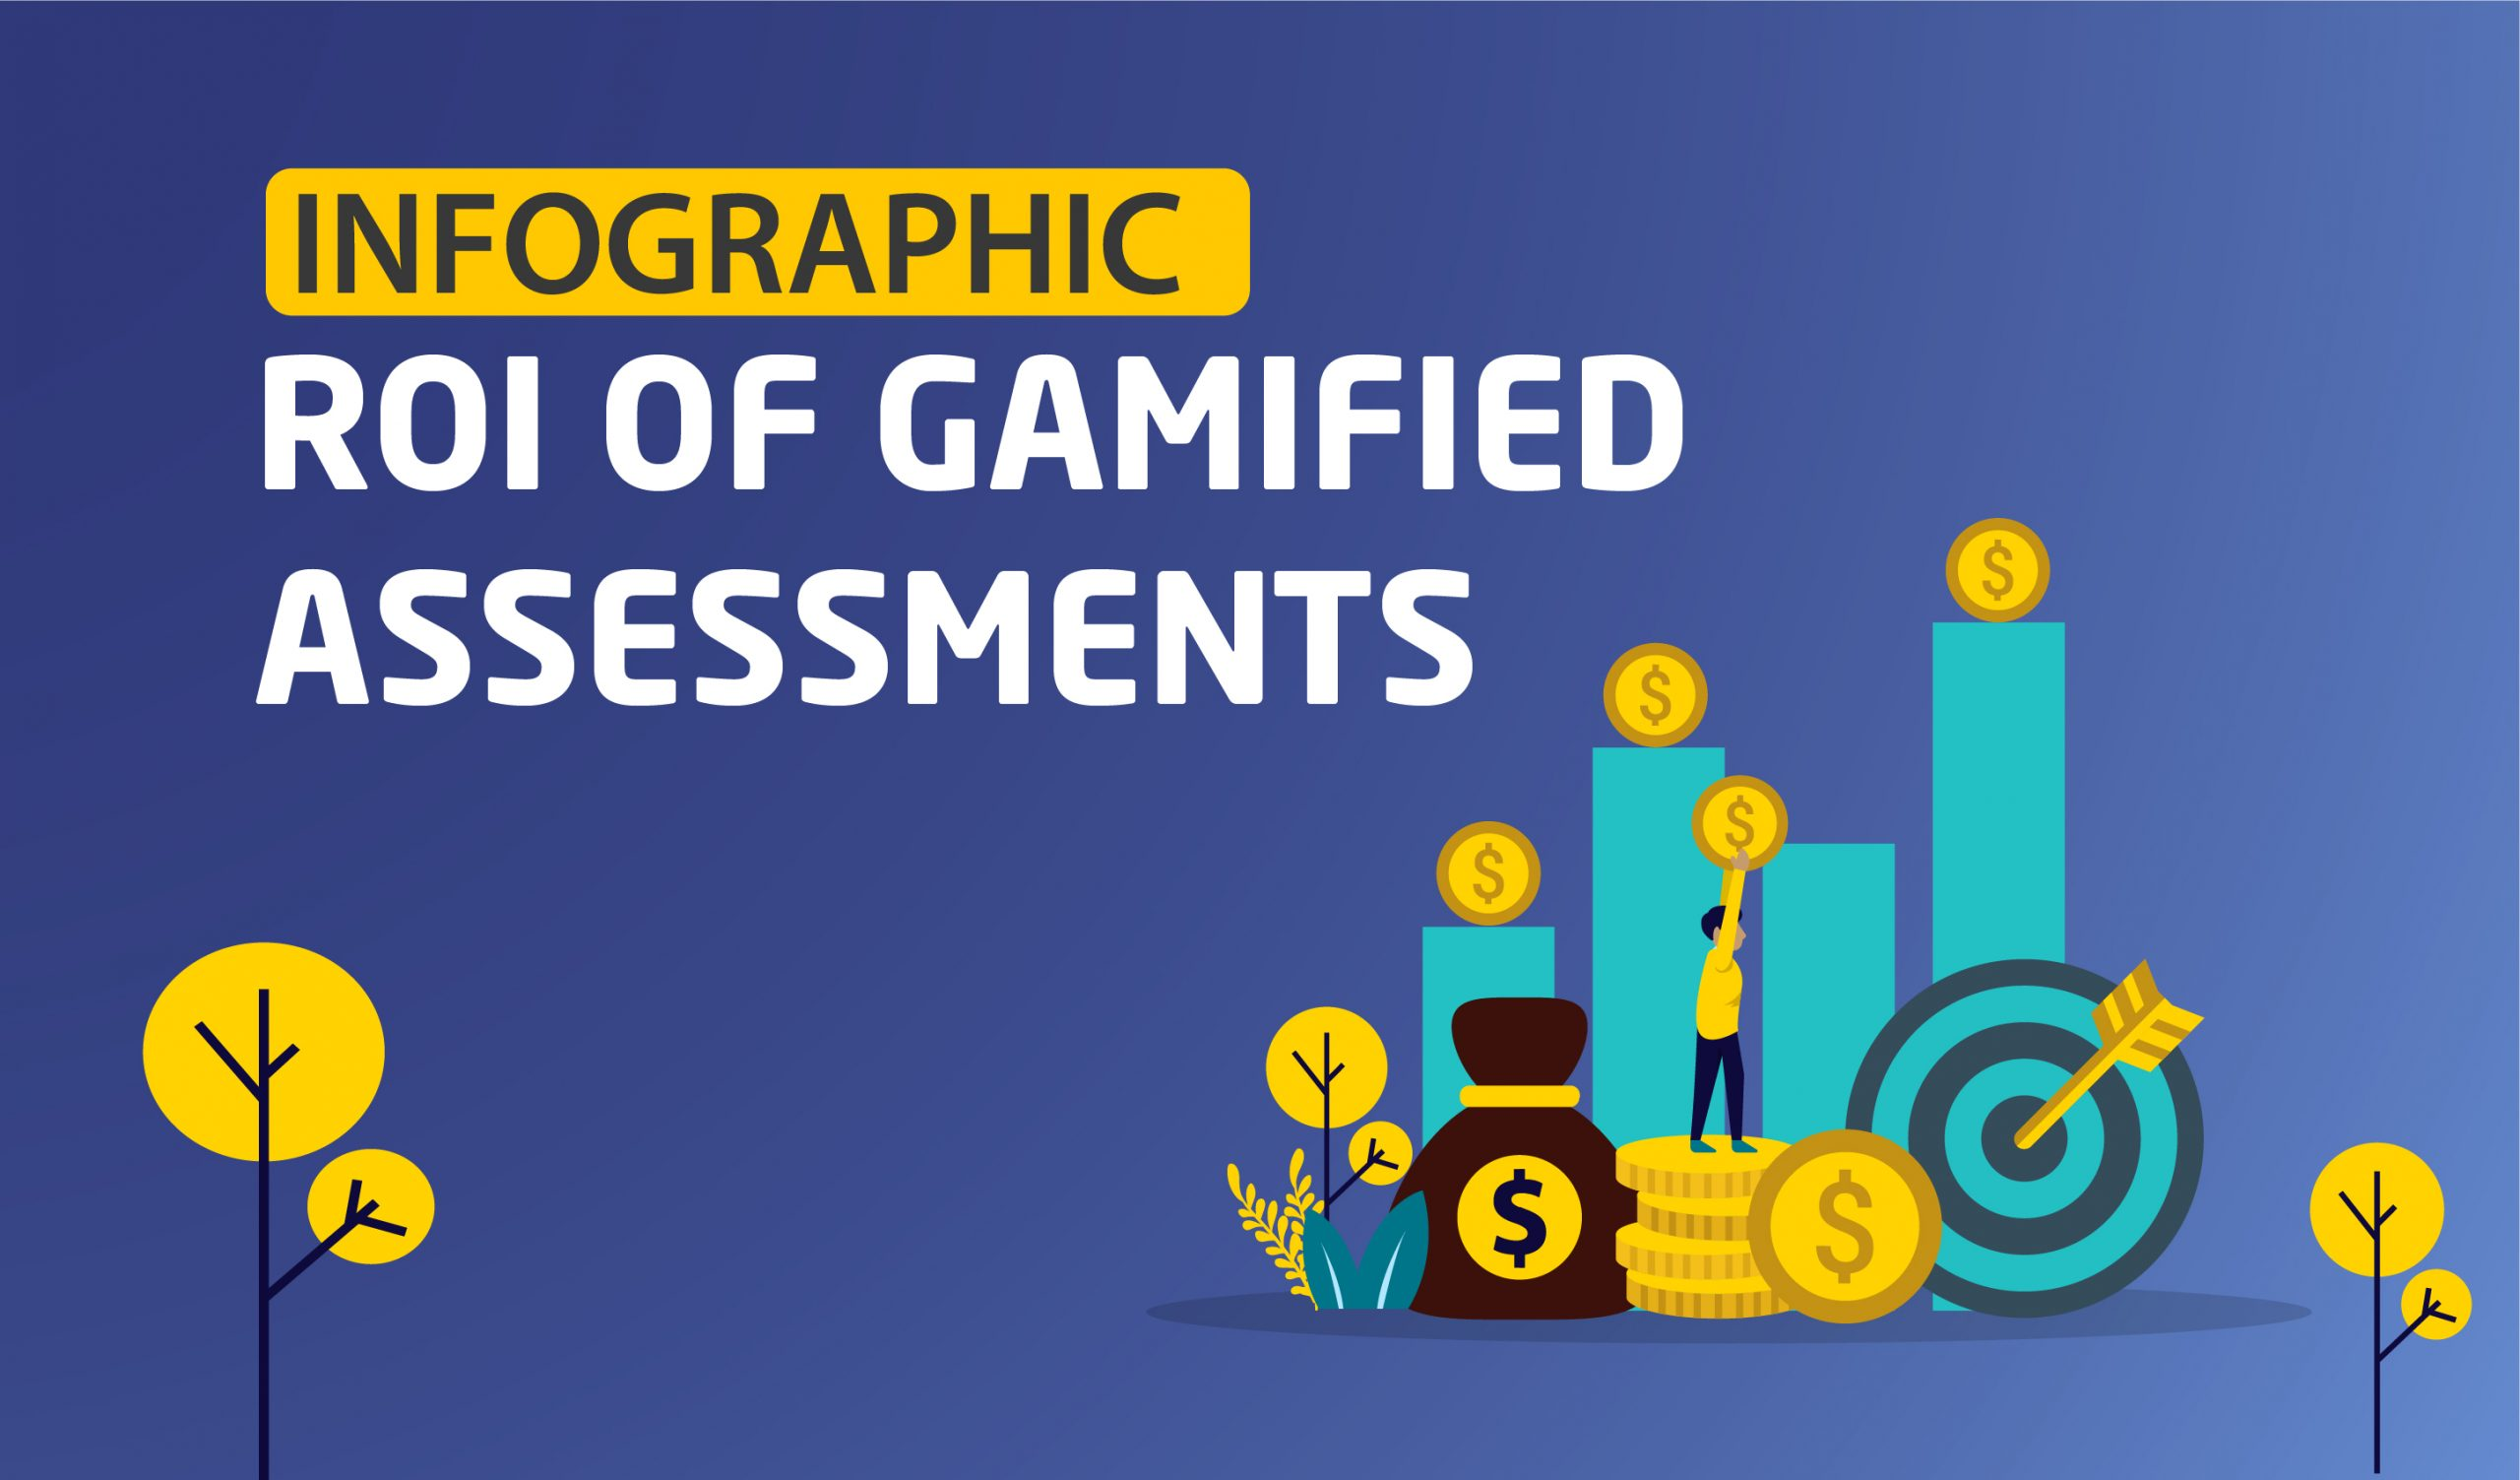 ROI of gamified assessments for recruiters